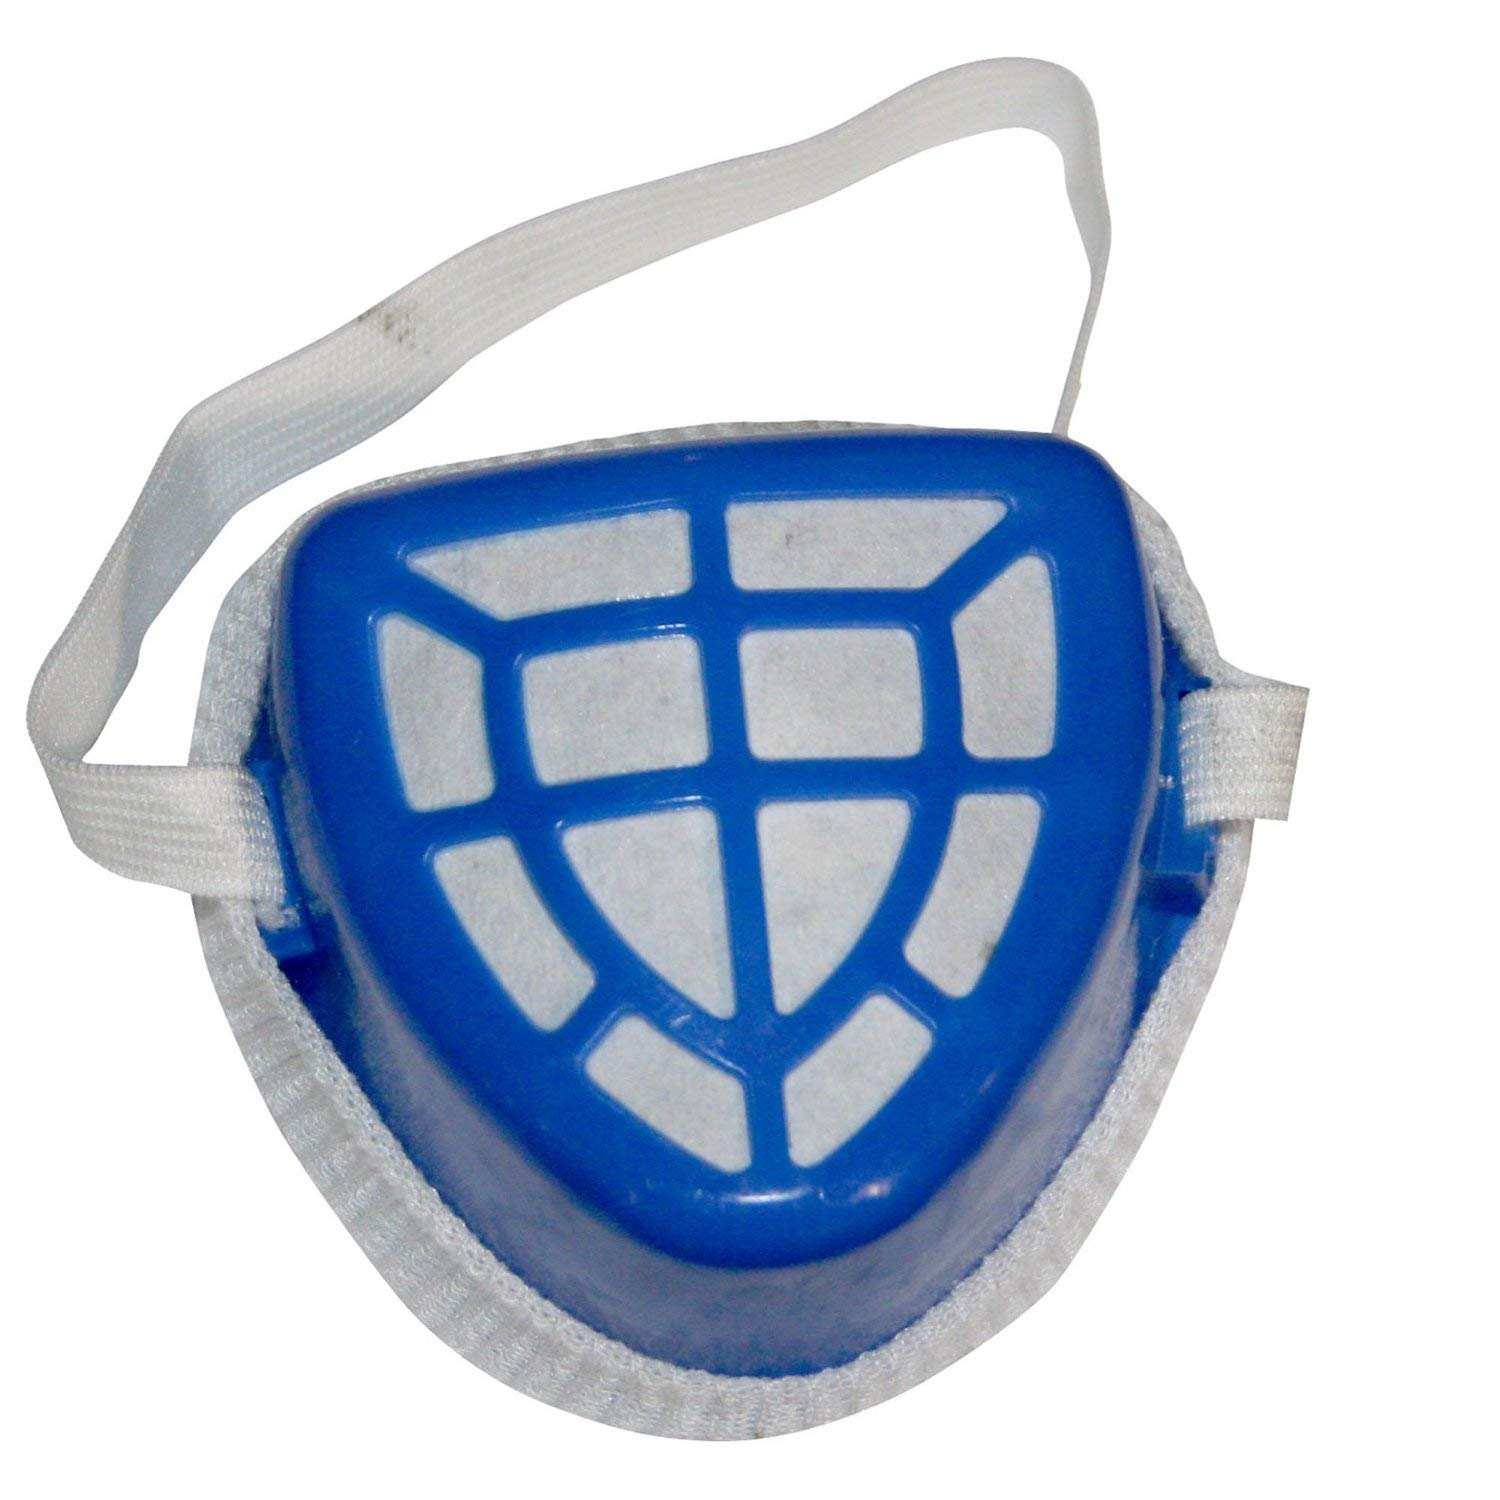 Half Face Adjustable V Shaped Mask and Filter for Safety Protection Against Dust, Pollution